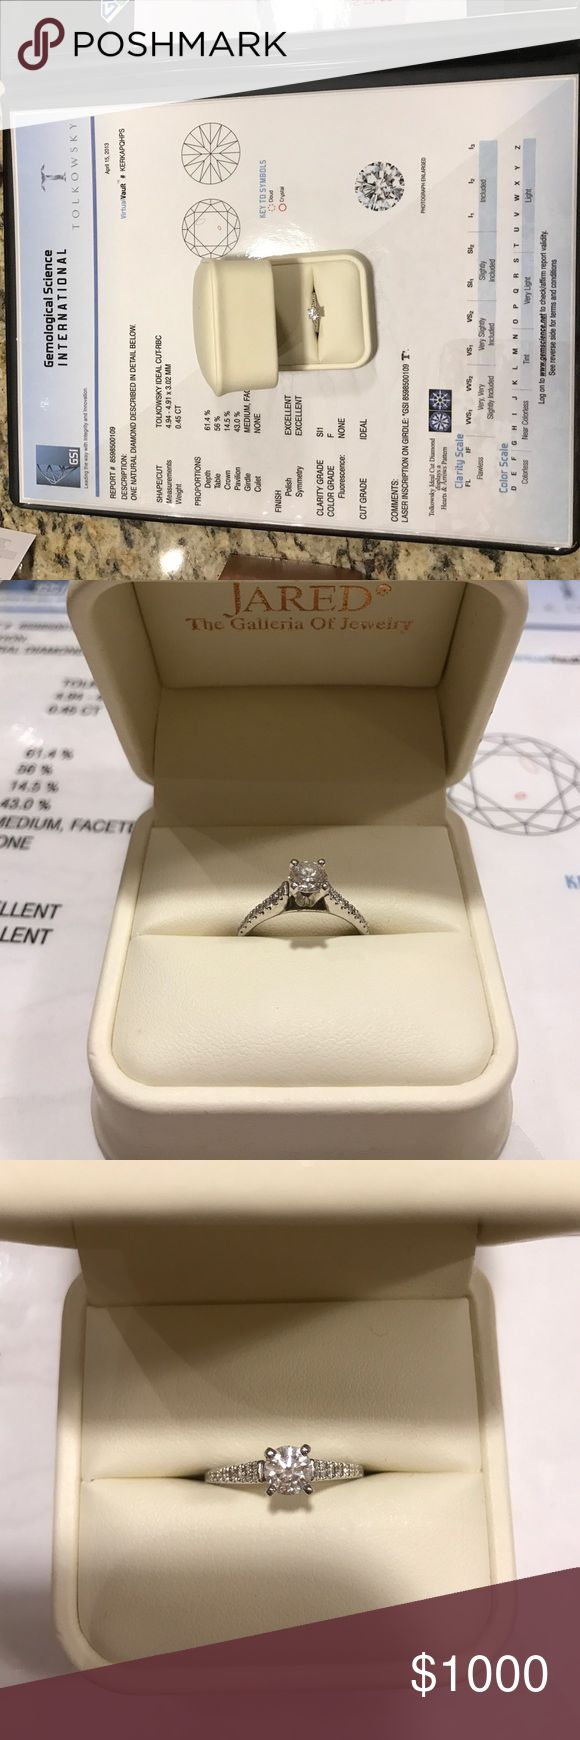 Jared Tolkowsky 0.45 carat engagement ring Jared Tolkowsky 0.45 carat engagement ring. Ideal cut round. Clarity - SI1 slightly included. Color - F colorless. Size 7. Jewelry Rings